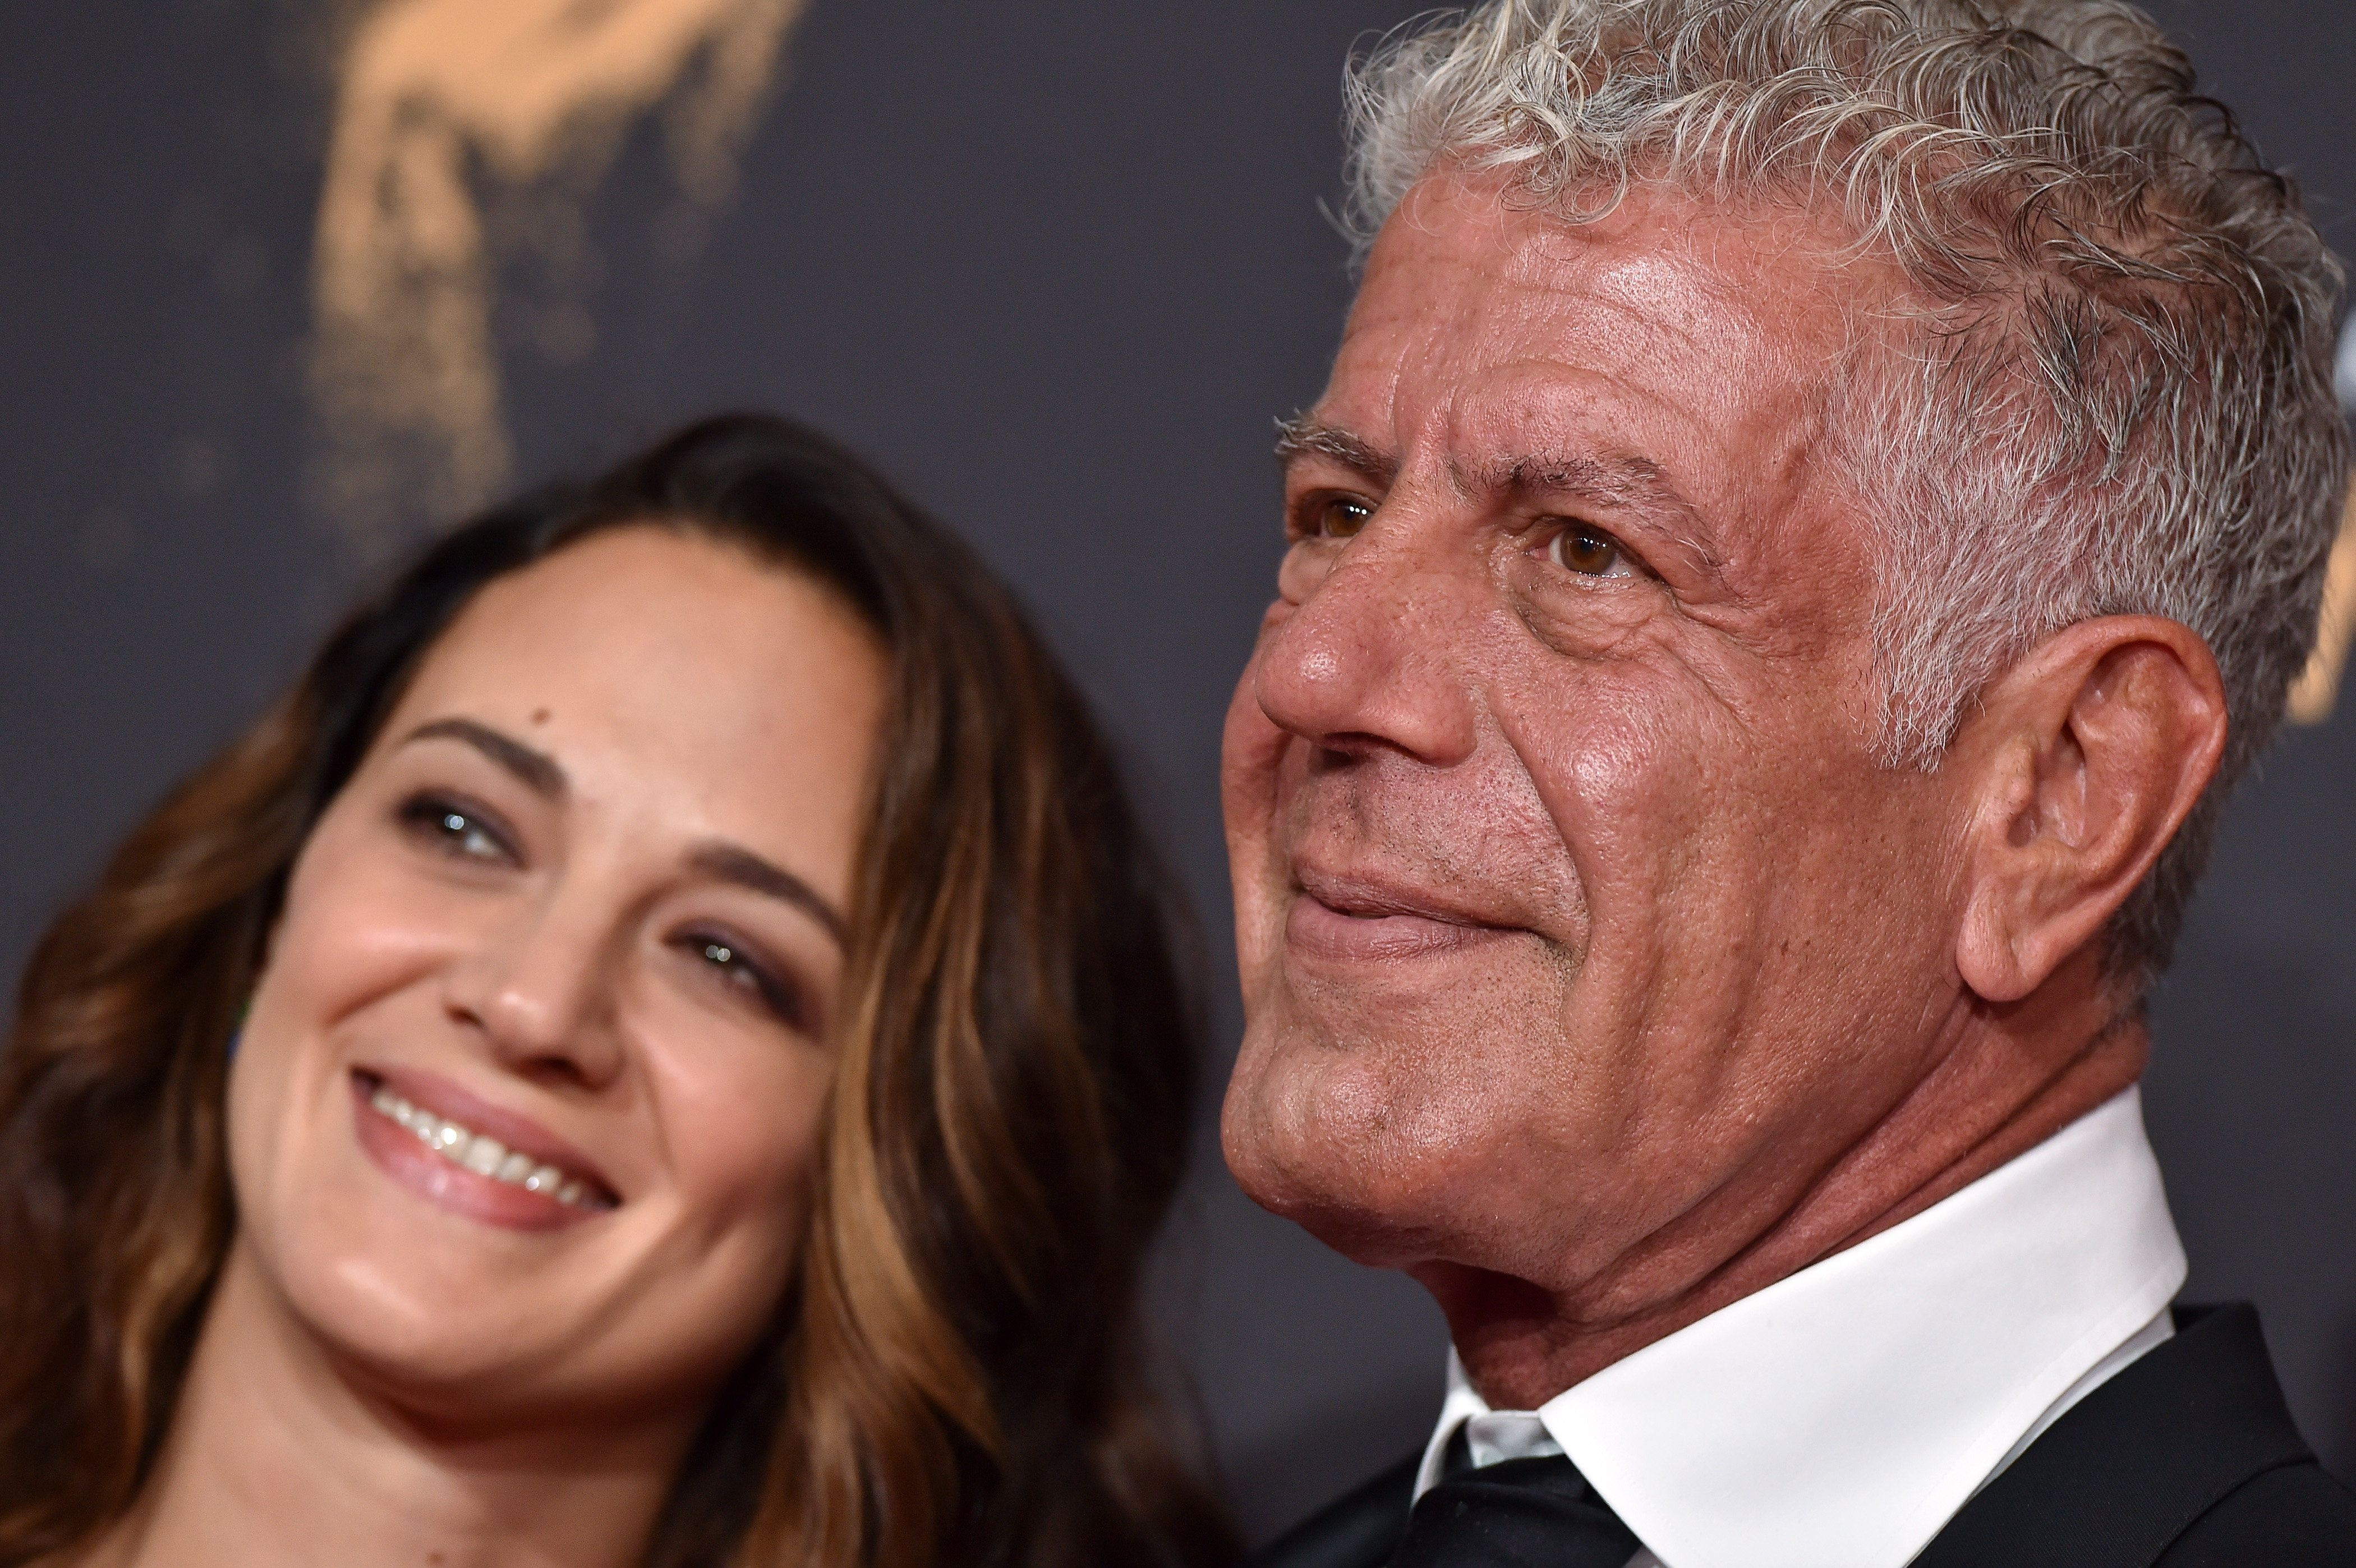 LOS ANGELES, CA - SEPTEMBER 09: Actress Asia Argento and chef Anthony Bourdain arrive at the 2017 Creative Arts Emmy Awards at Microsoft Theater on September 9, 2017 in Los Angeles, California. (Photo by Axelle/Bauer-Griffin/FilmMagic)